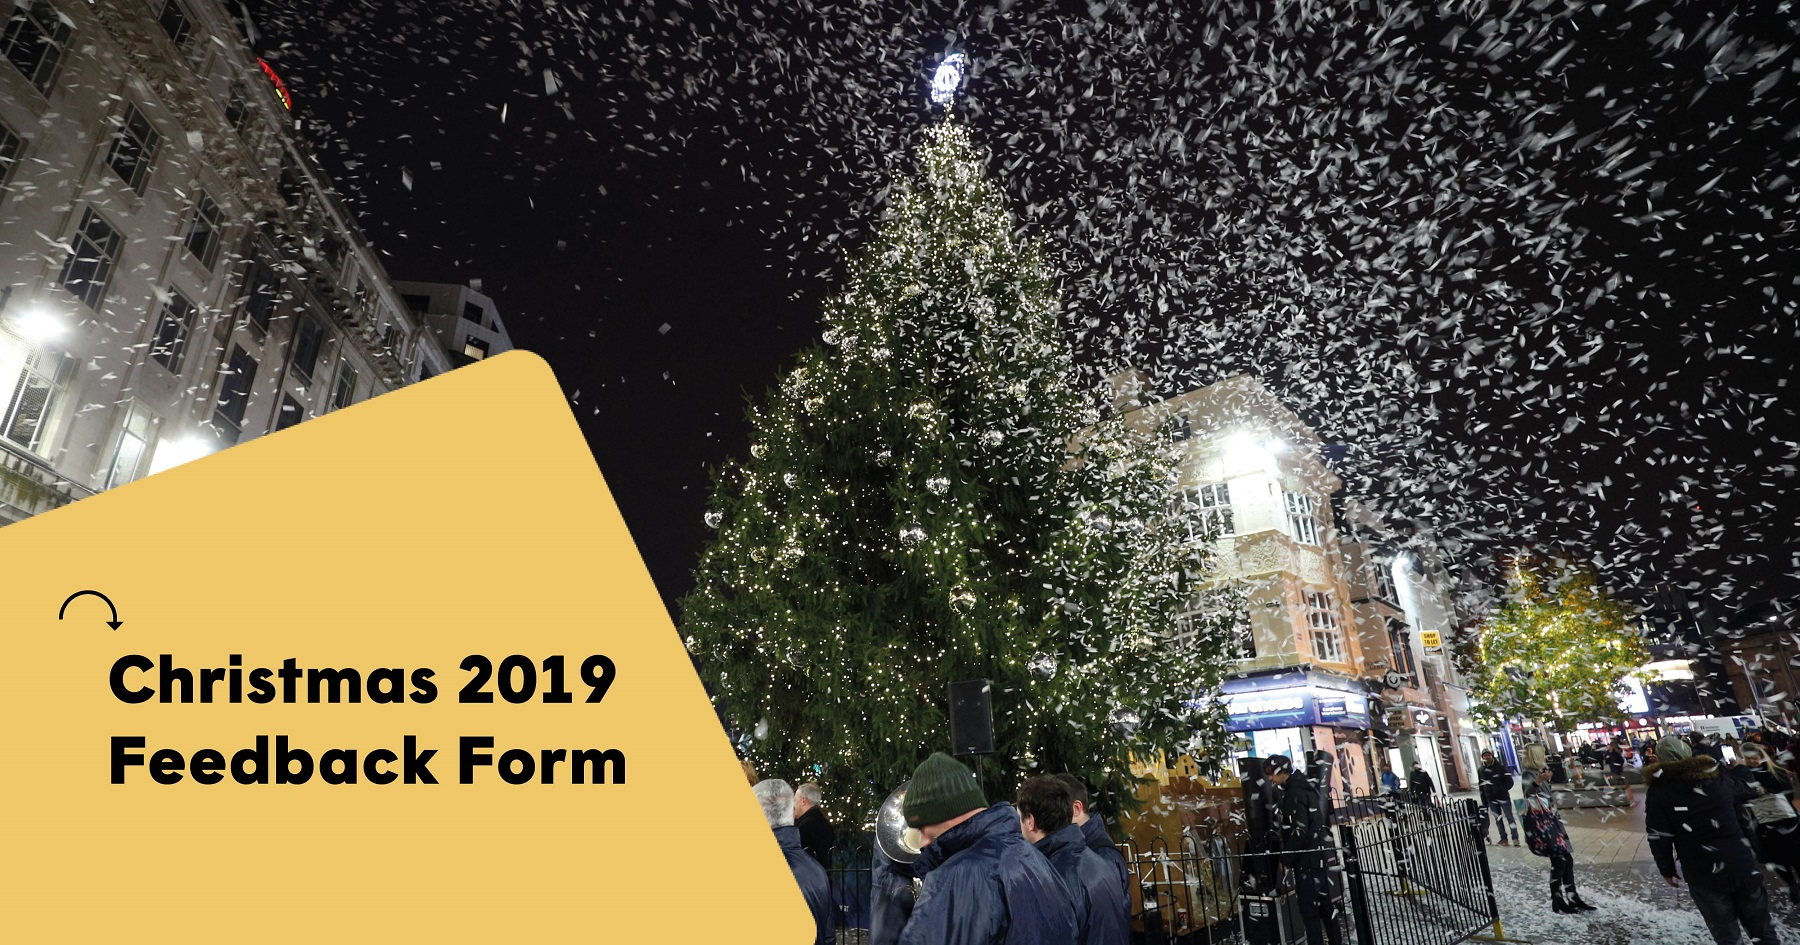 Let us know what you thought of Christmas 2019!